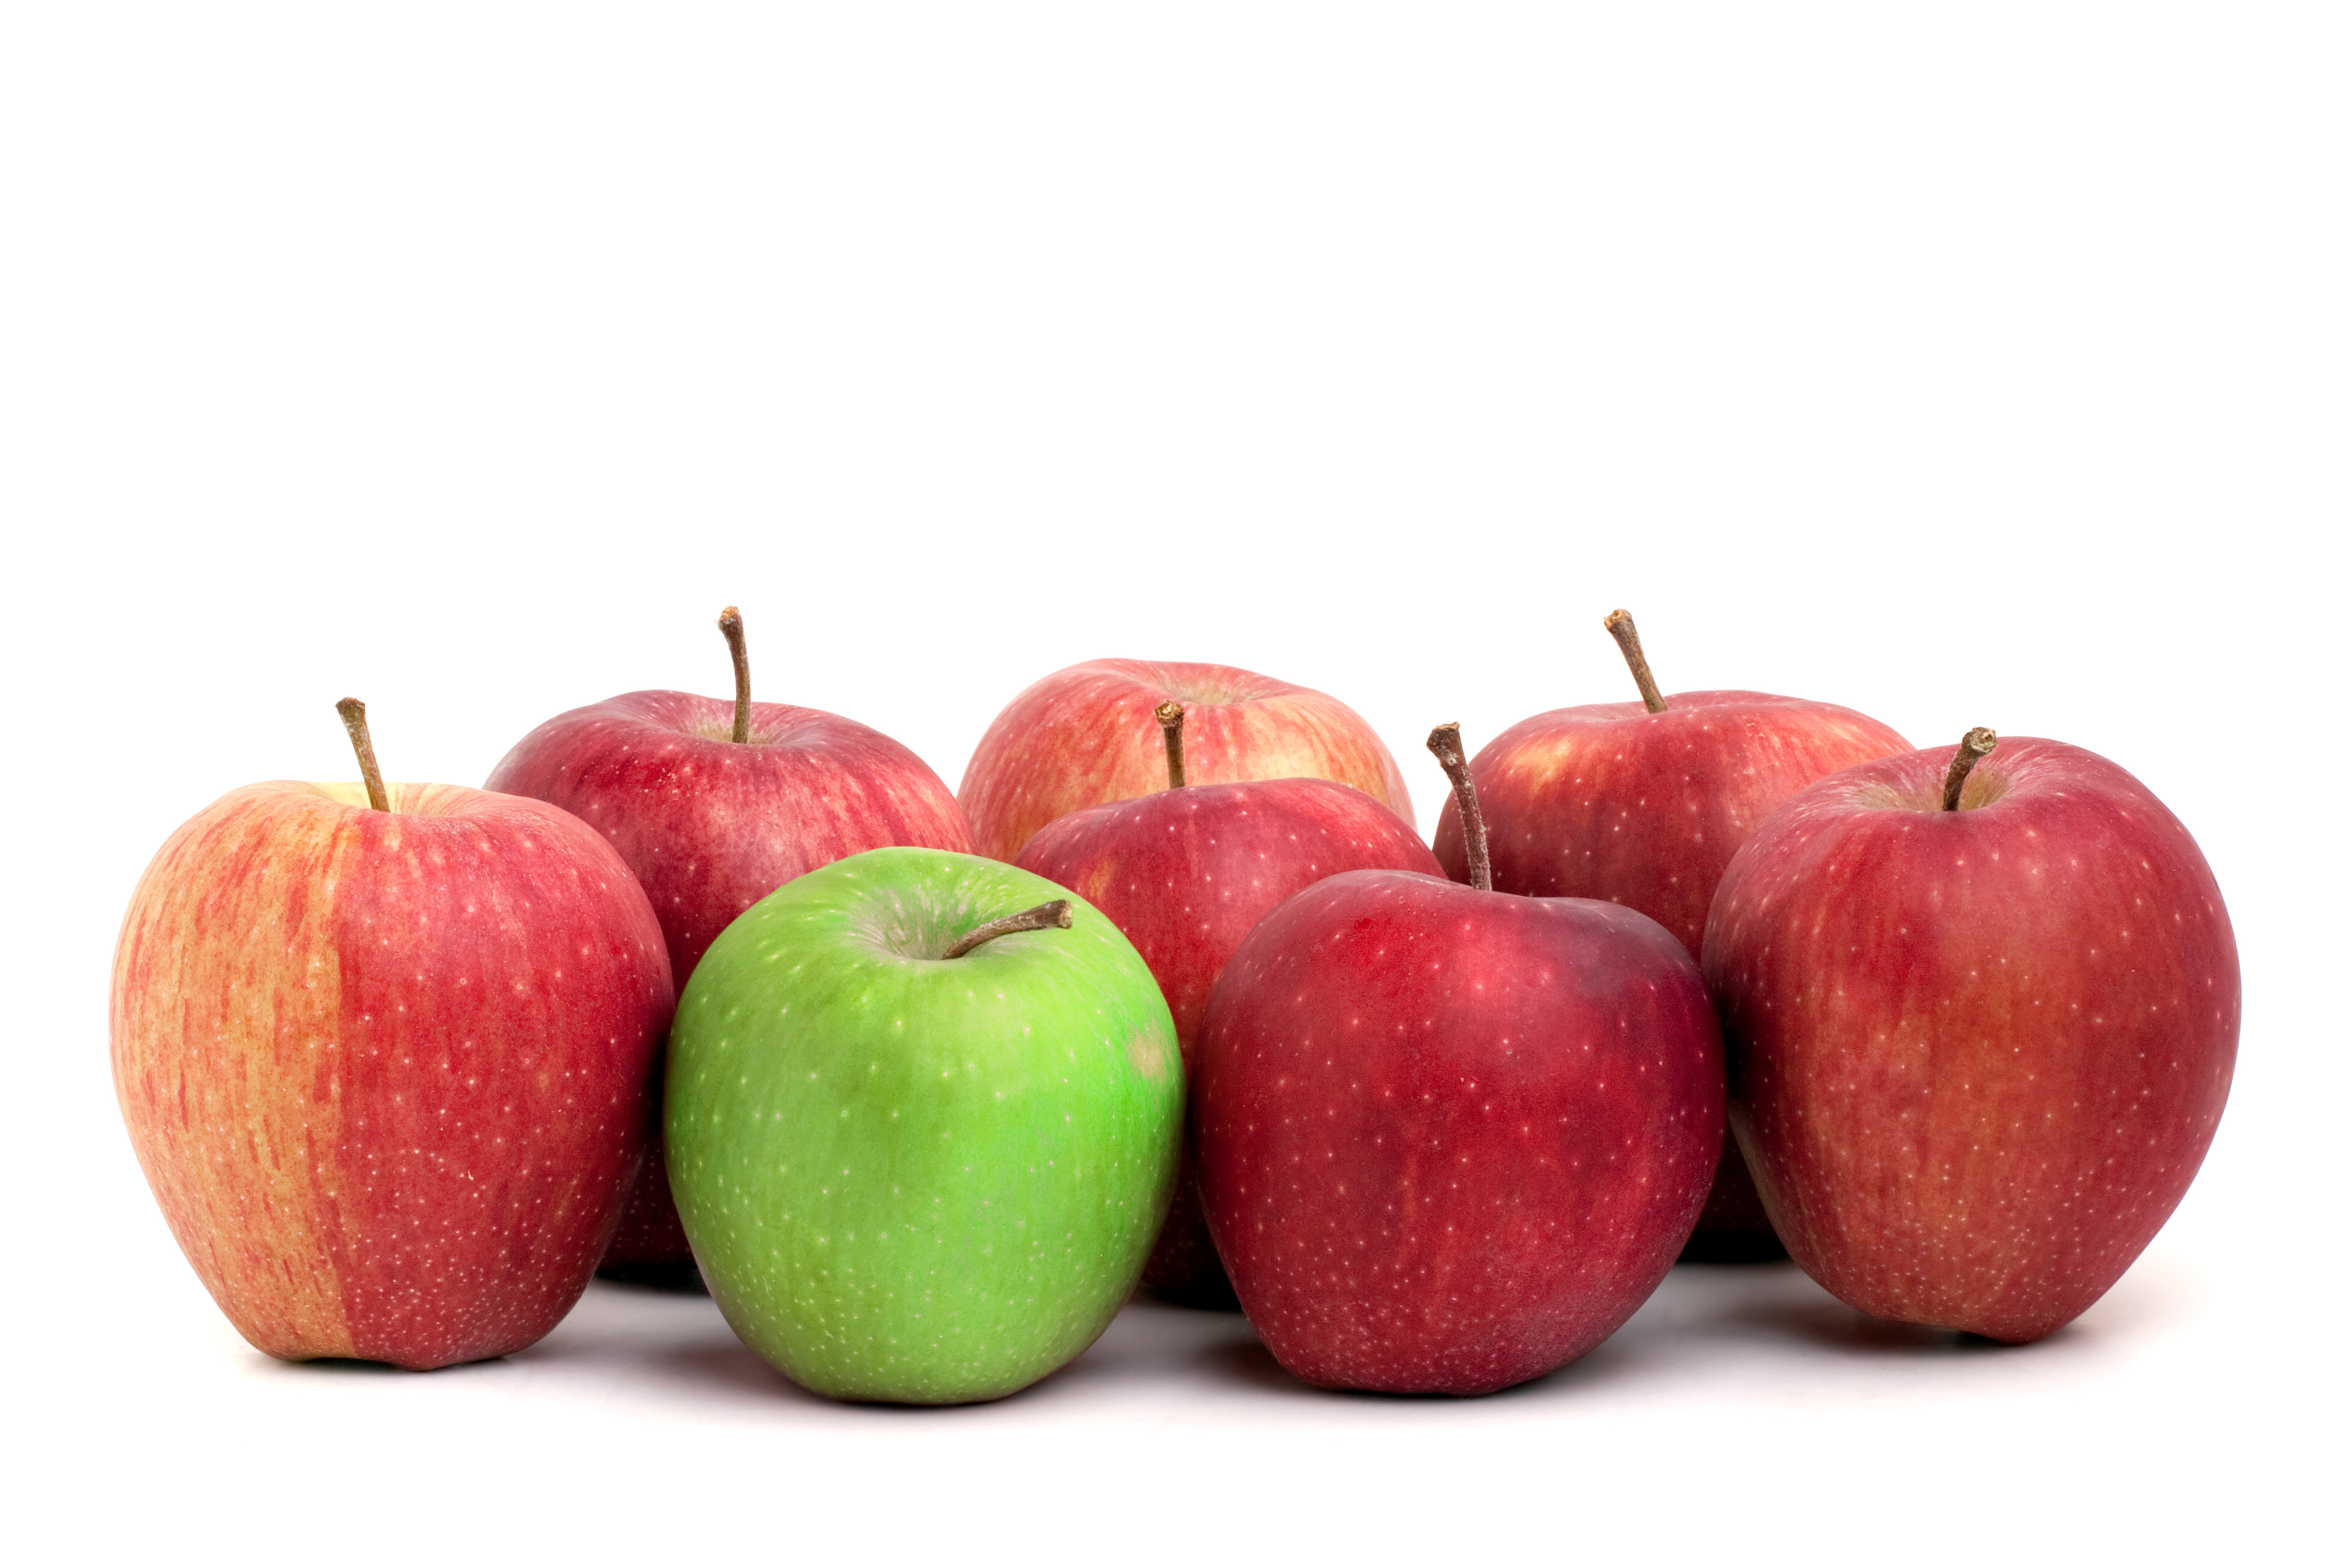 A Lone Green Granny Smith Apple Sits Amongst A Crowd Of Red Delicious Apples Htelh P0Ro